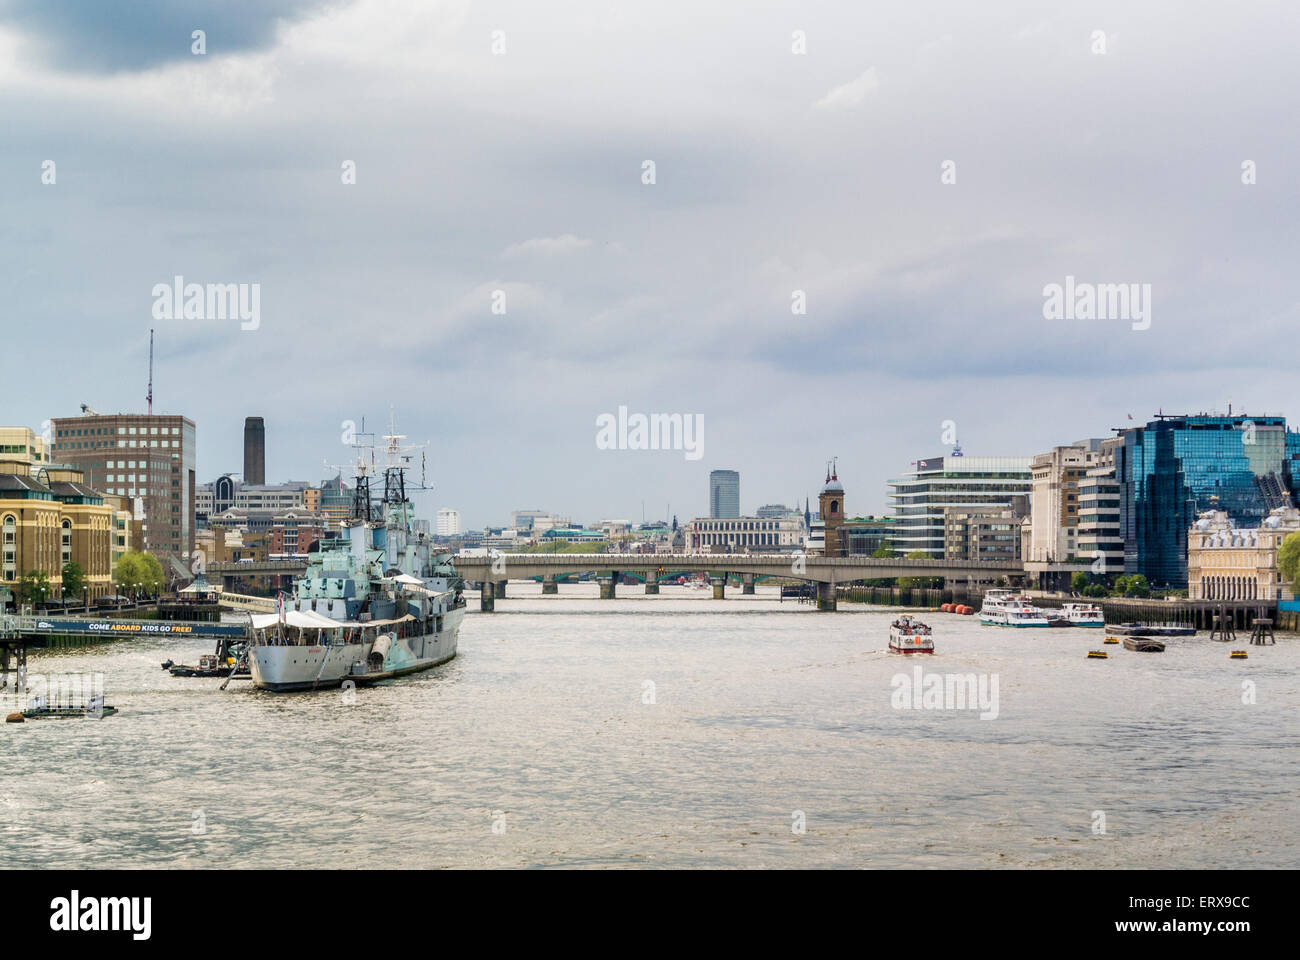 River Thames with HMS Belfast, London Bridge and Northern and Shell building, London, UK. - Stock Image